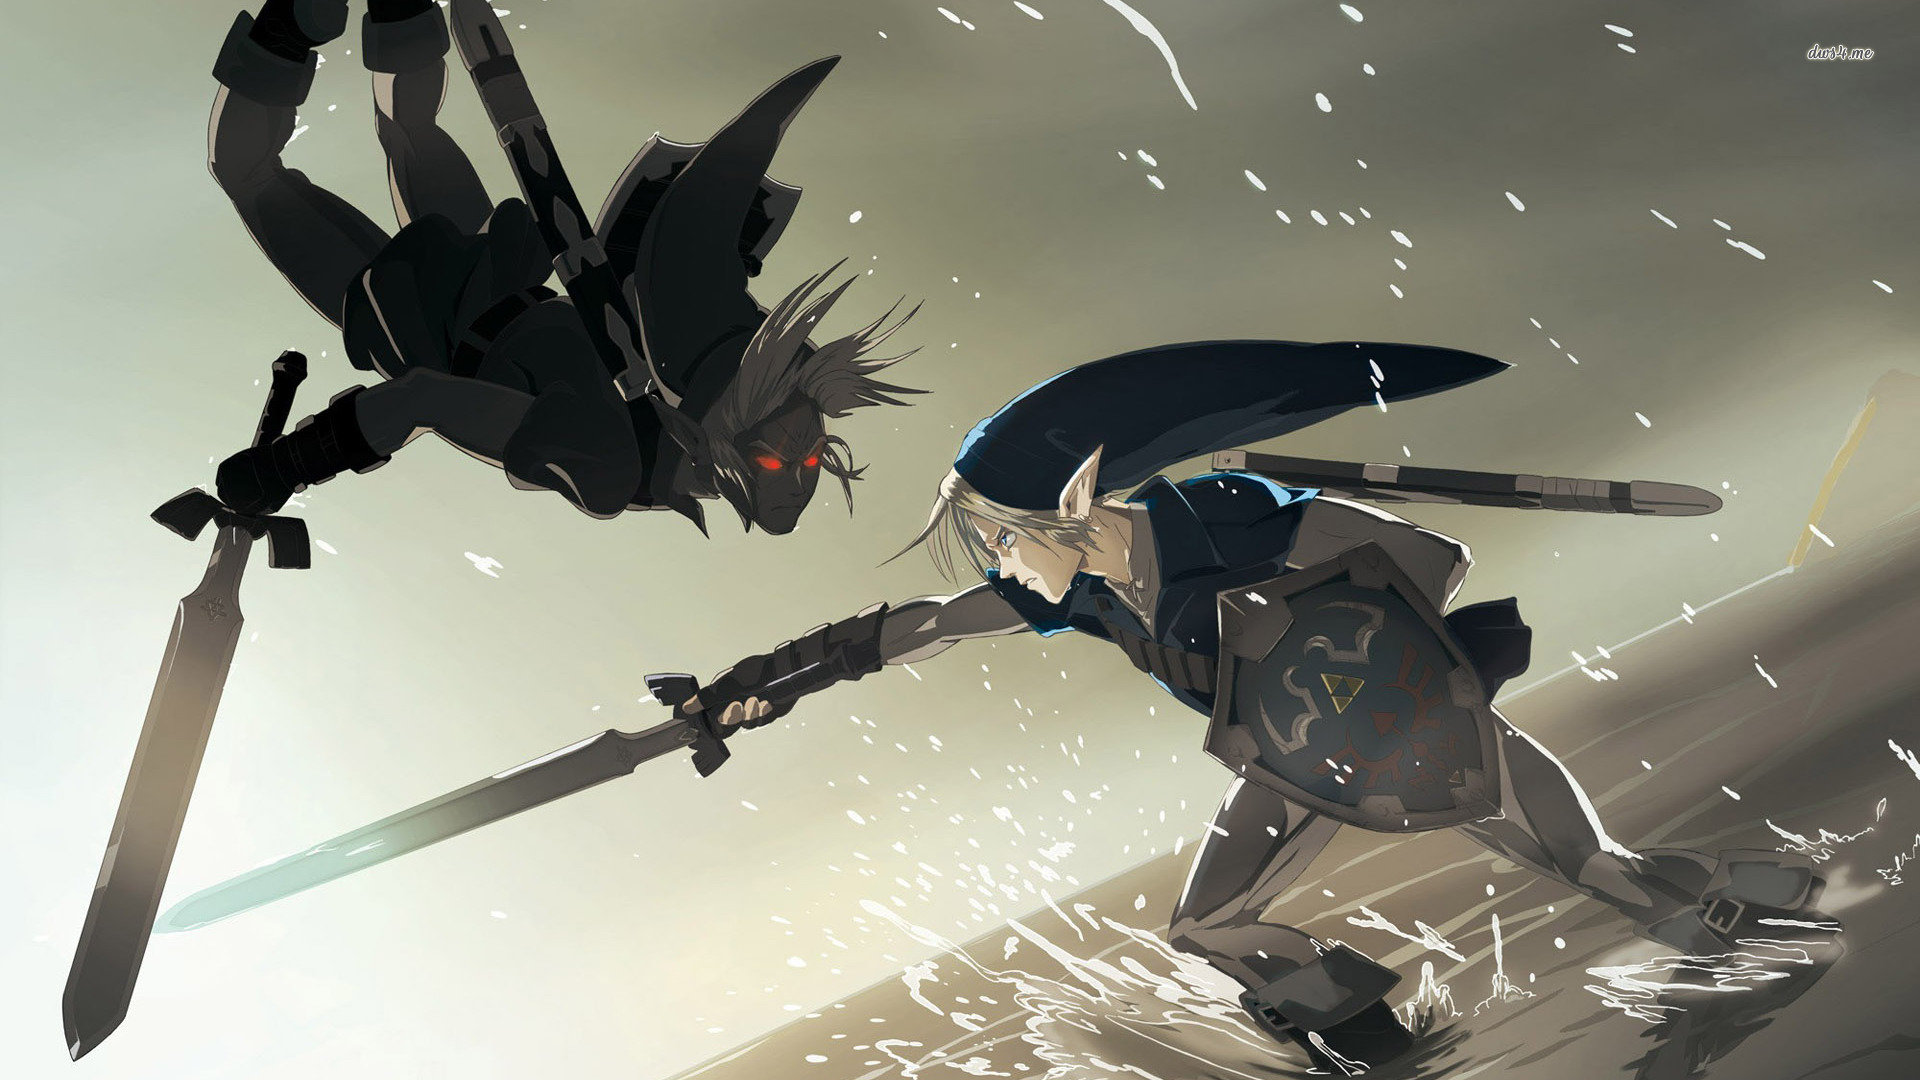 Link vs Dark Link wallpaper   728944 1920x1080